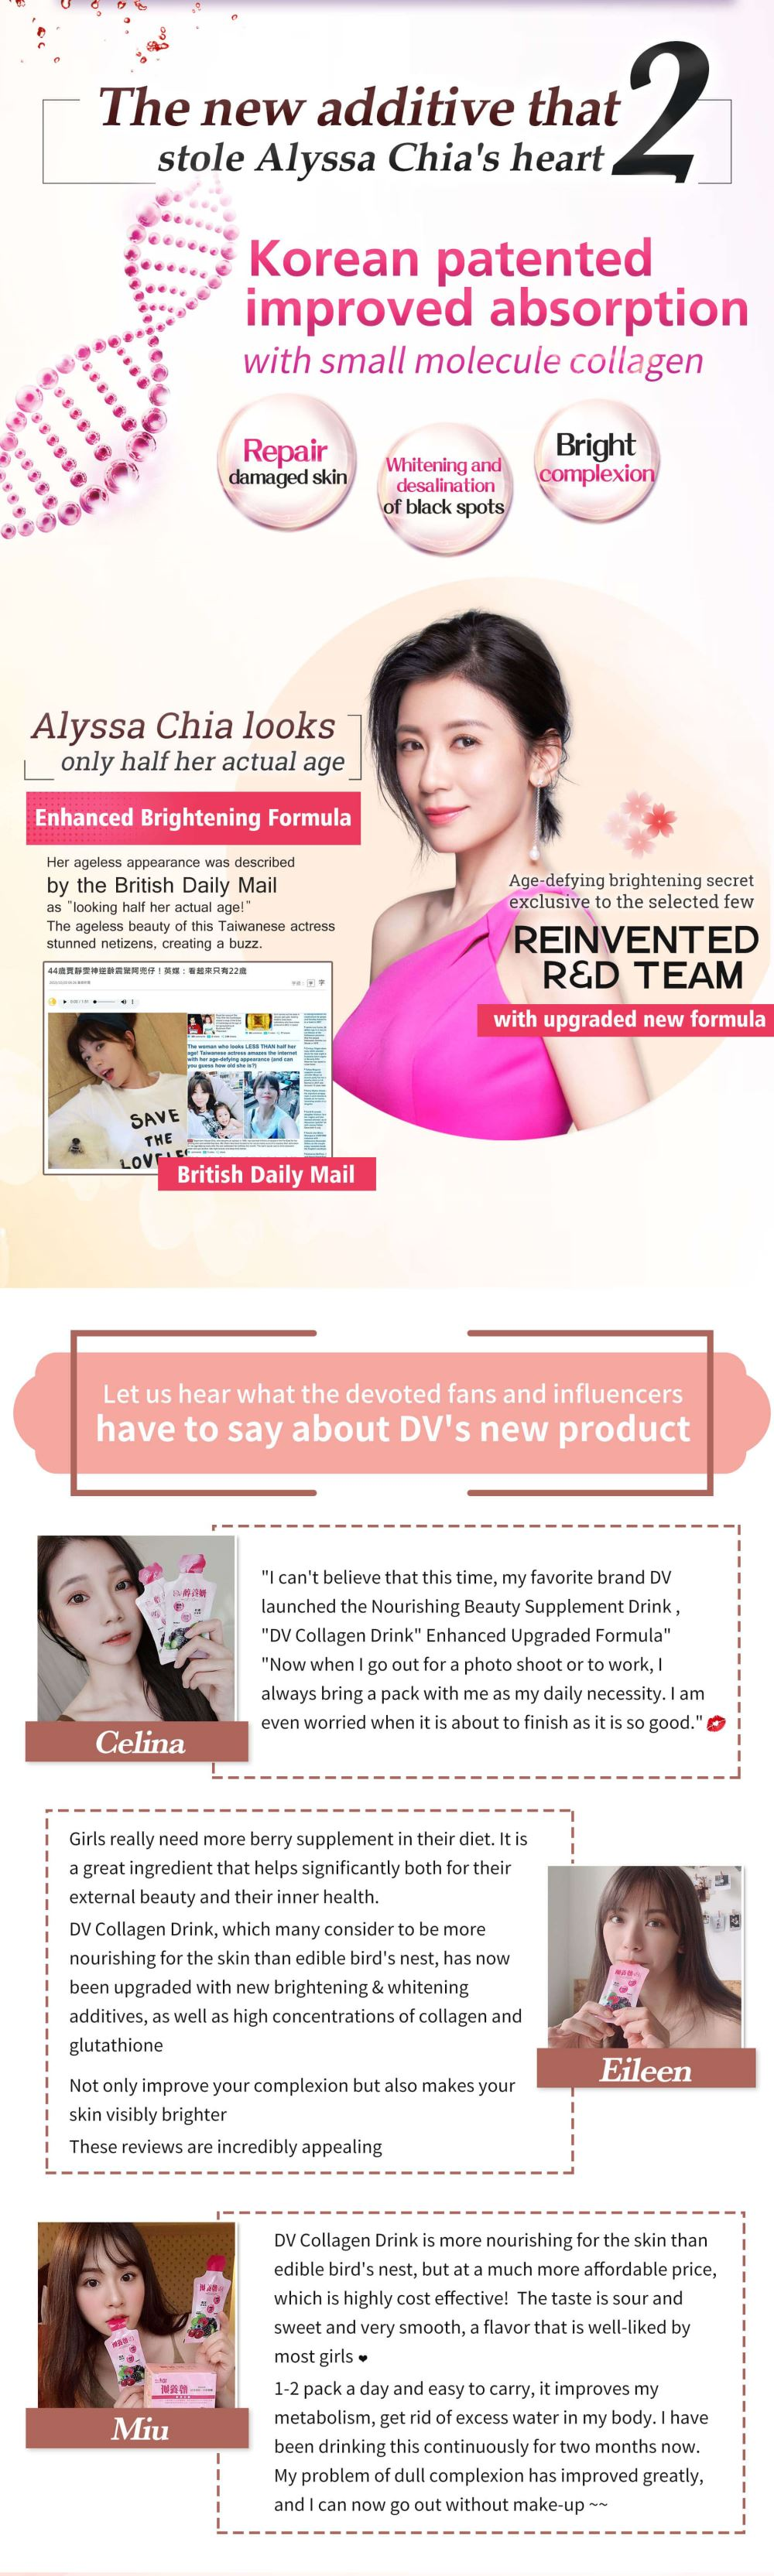 DV Collagen Drink